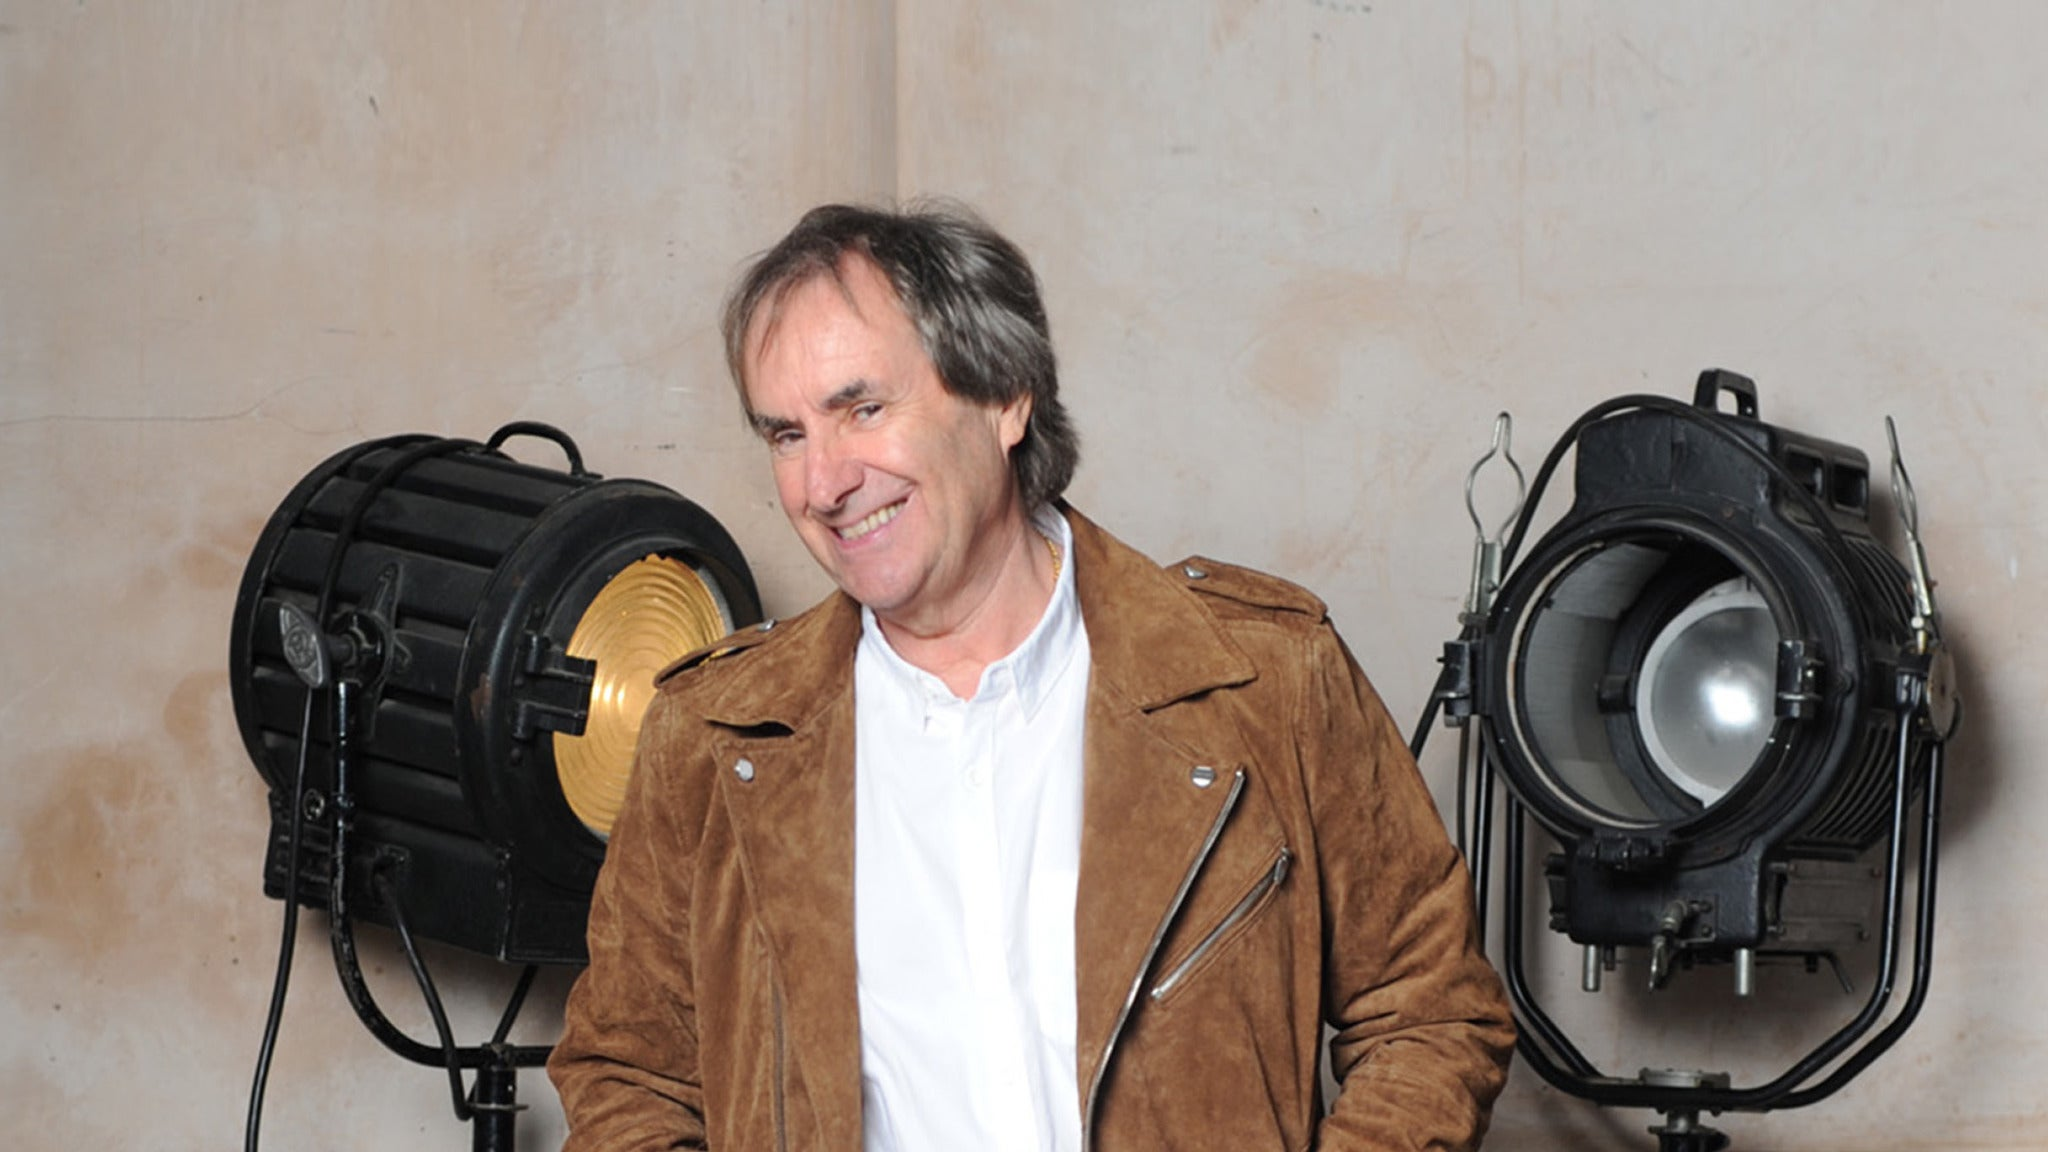 Chris de Burgh: The Legend of Robin Hood Tour Seating Plans